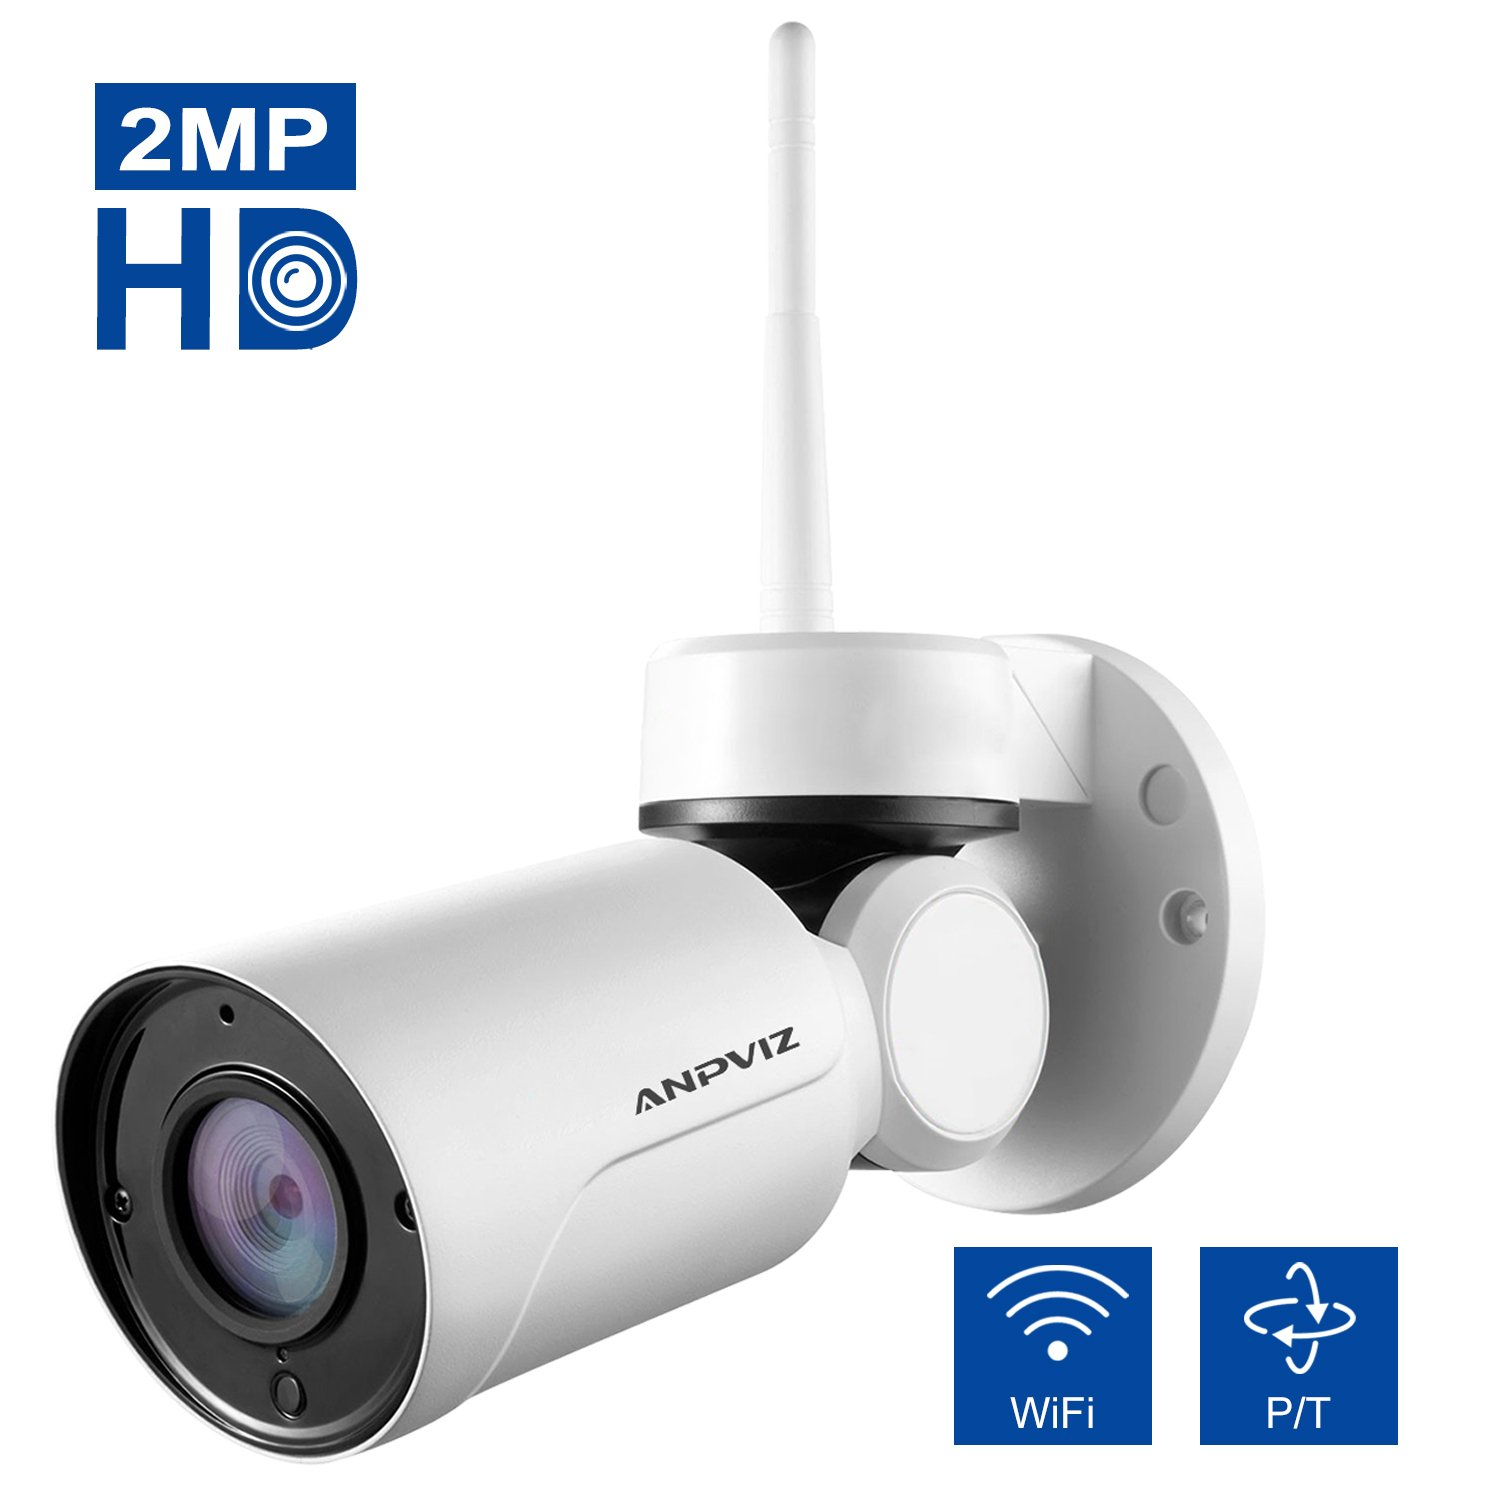 Wireless Security Camera,Anpviz Outdoor PT IP Camera 1080P HD, Pan/Tilt Remote Control, Built-in Microphone, 3.6mm lens and Night Vision, Support Max 128GB SD Card by Anpviz